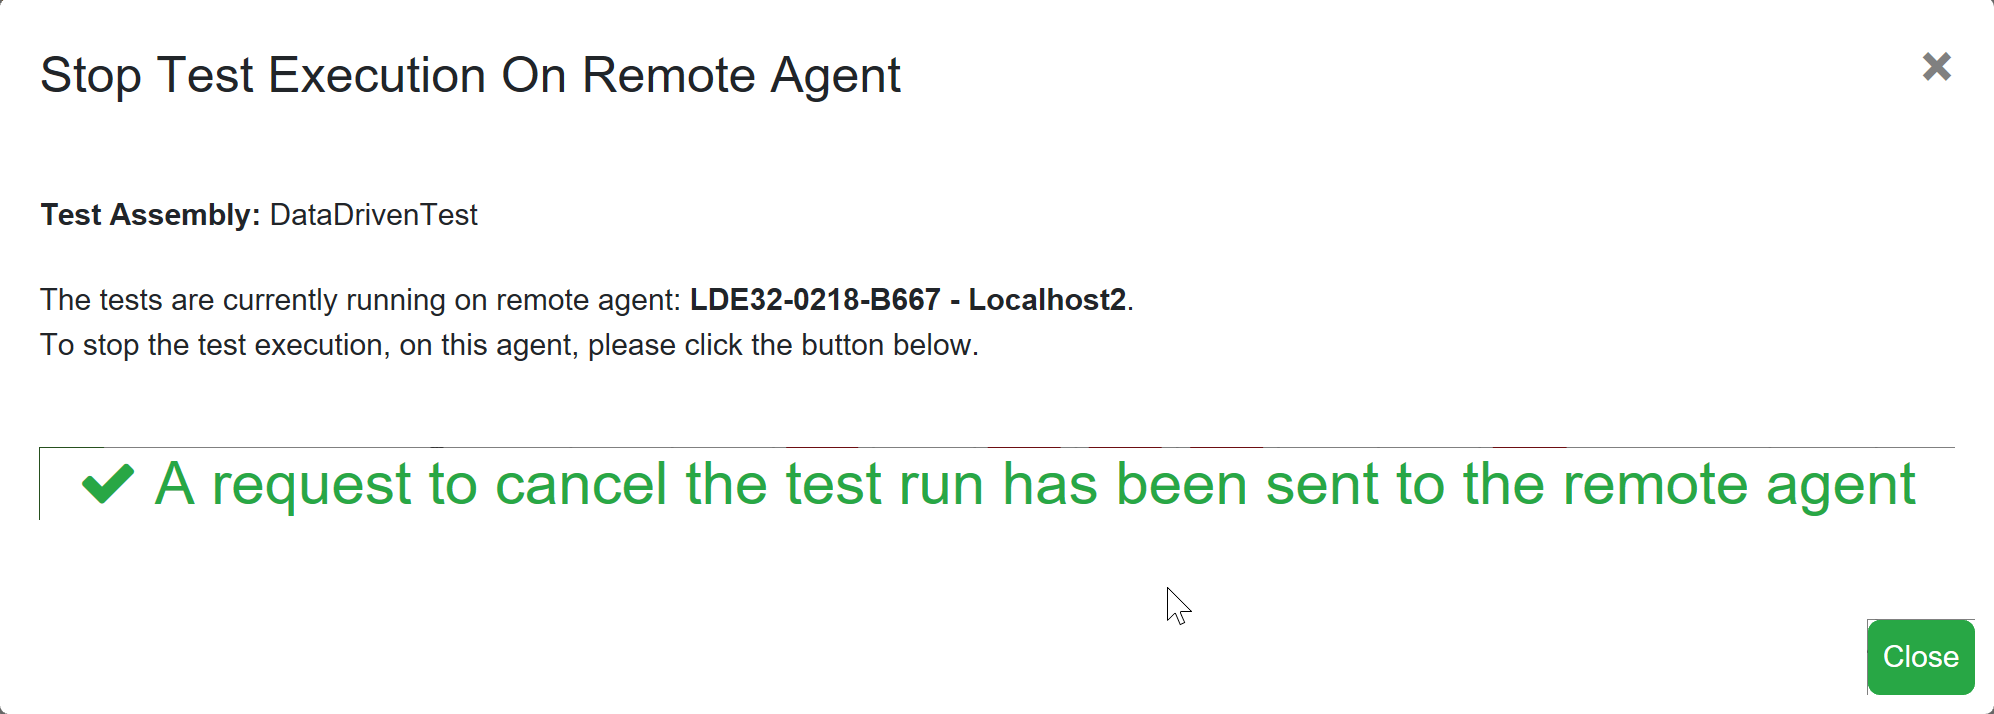 SentryOne Test Stop Test Execution on Remote Agent acknowledged